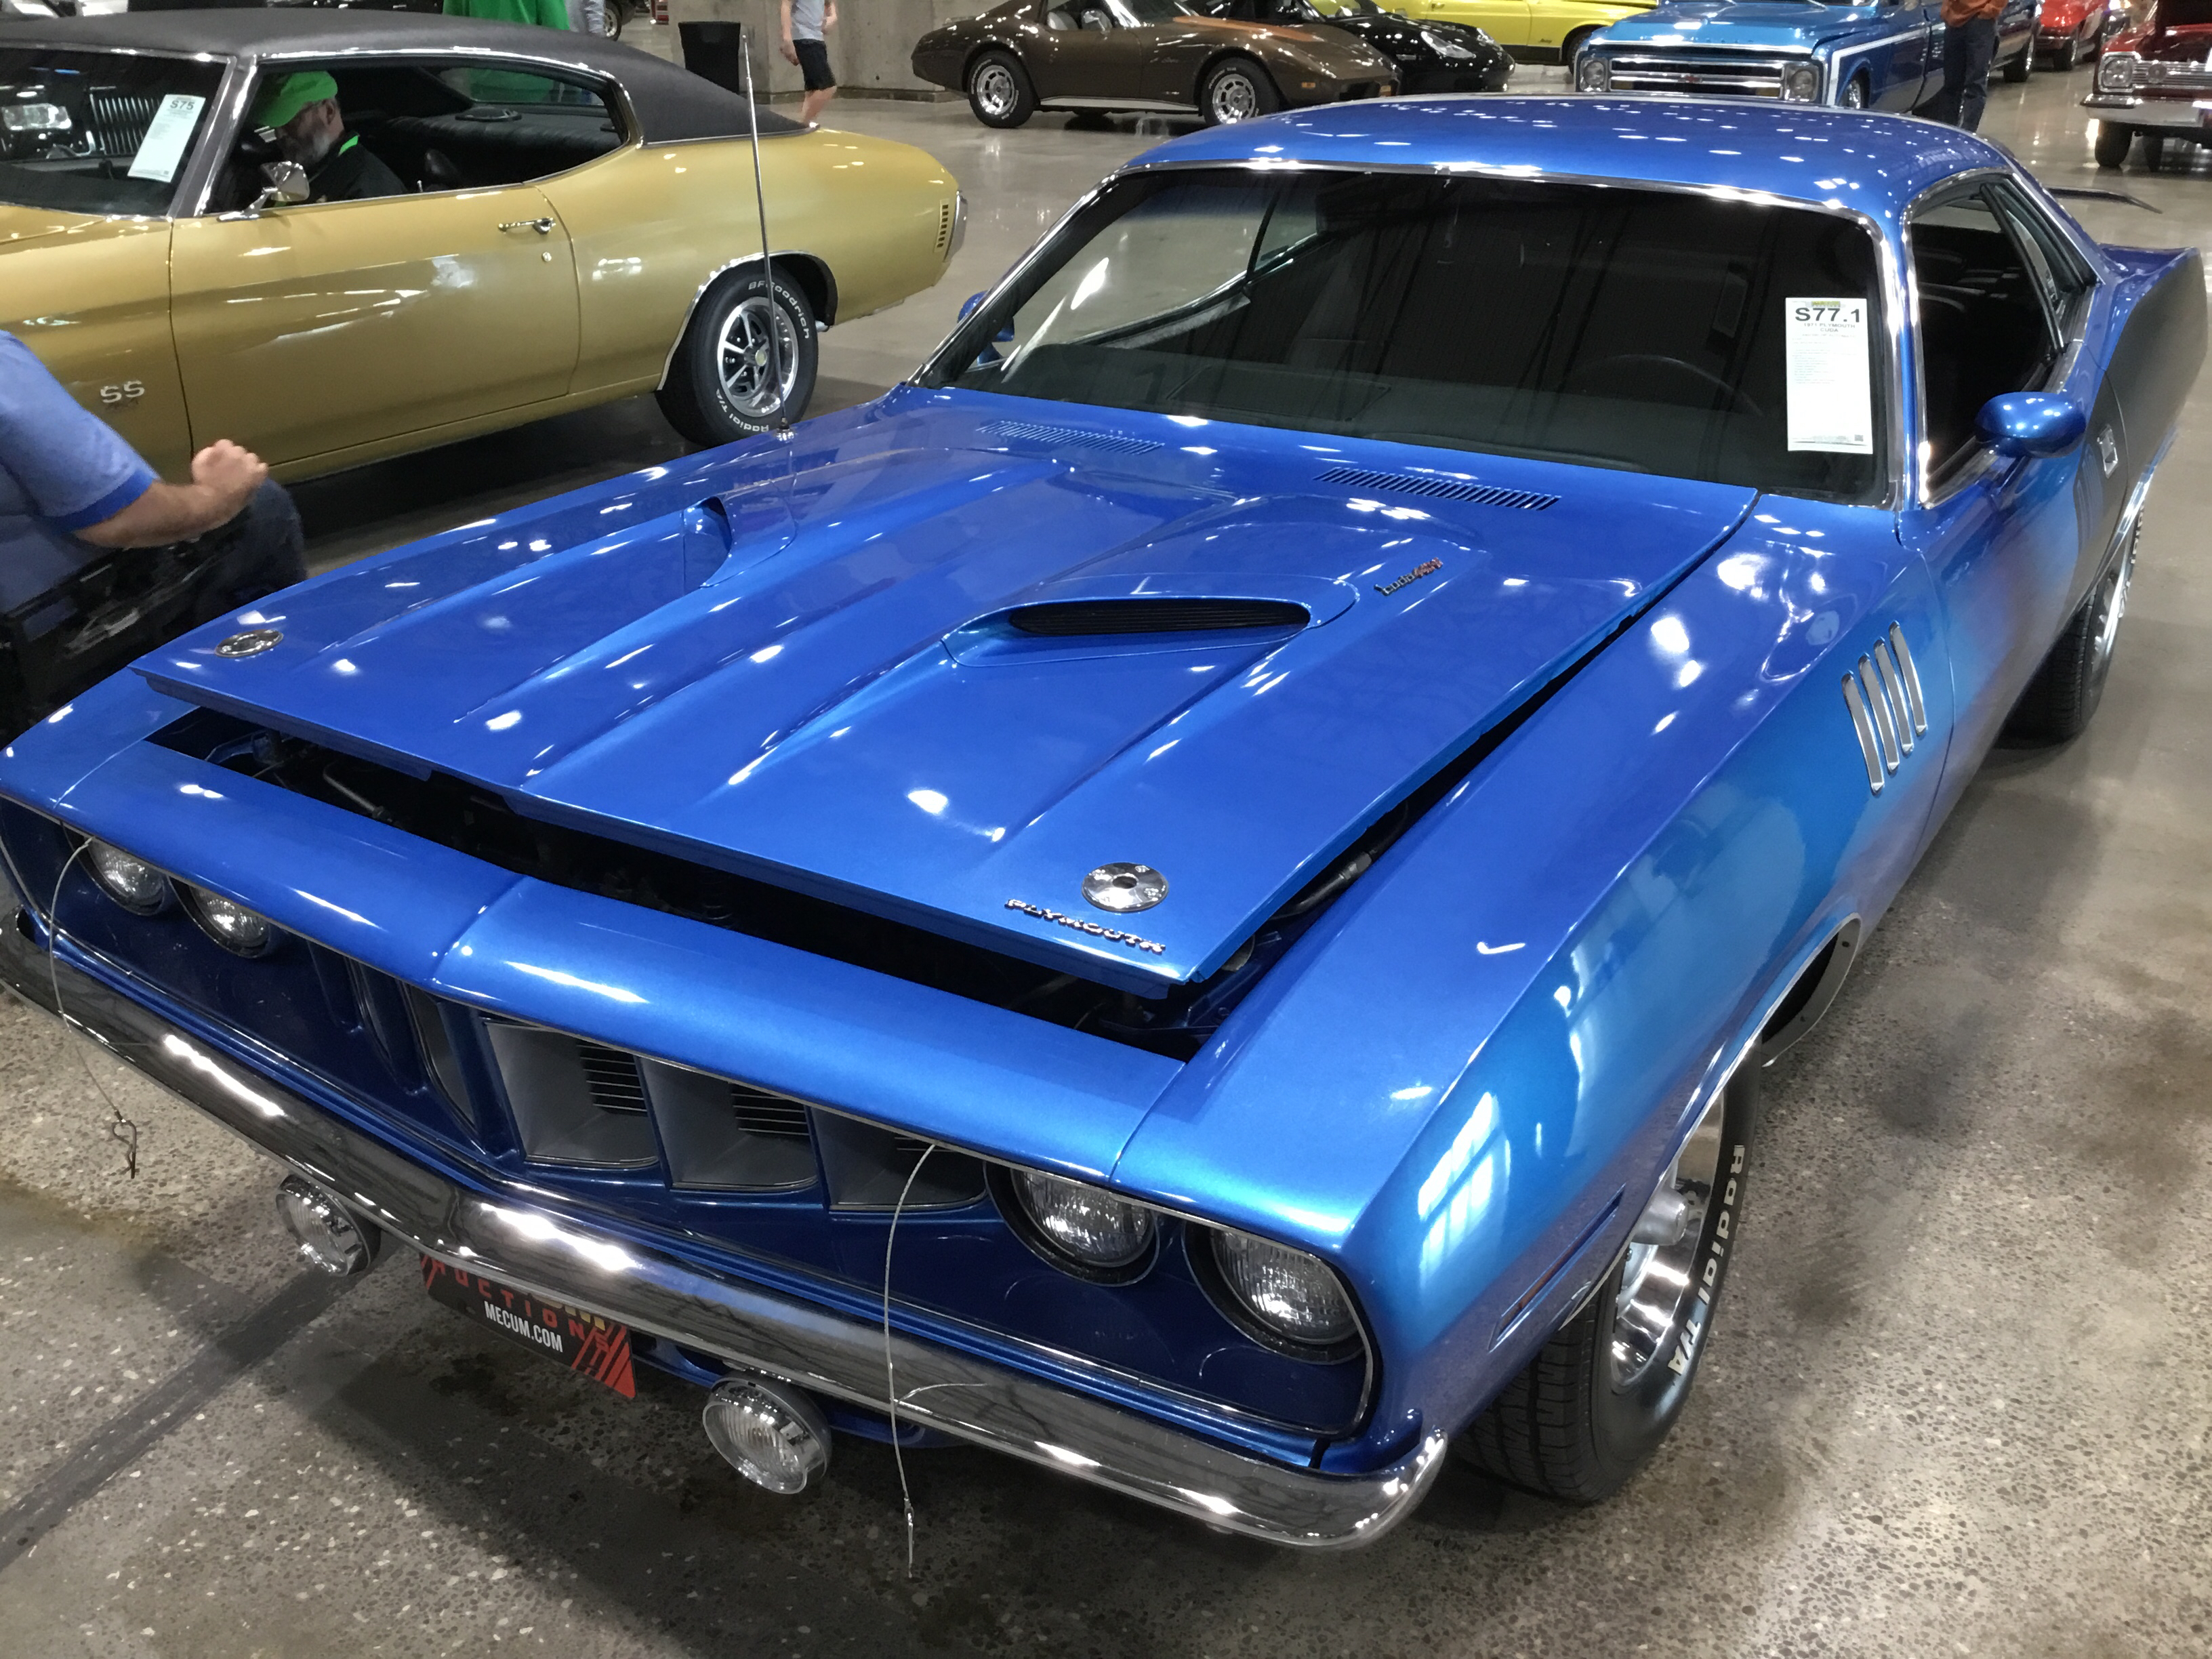 1974 Plymouth Cuda Values Hagerty Valuation Tool 1960s Cars 1971 Hardtop Coupe 8 Cyl 383cid 300hp 4bbl Hi Perf